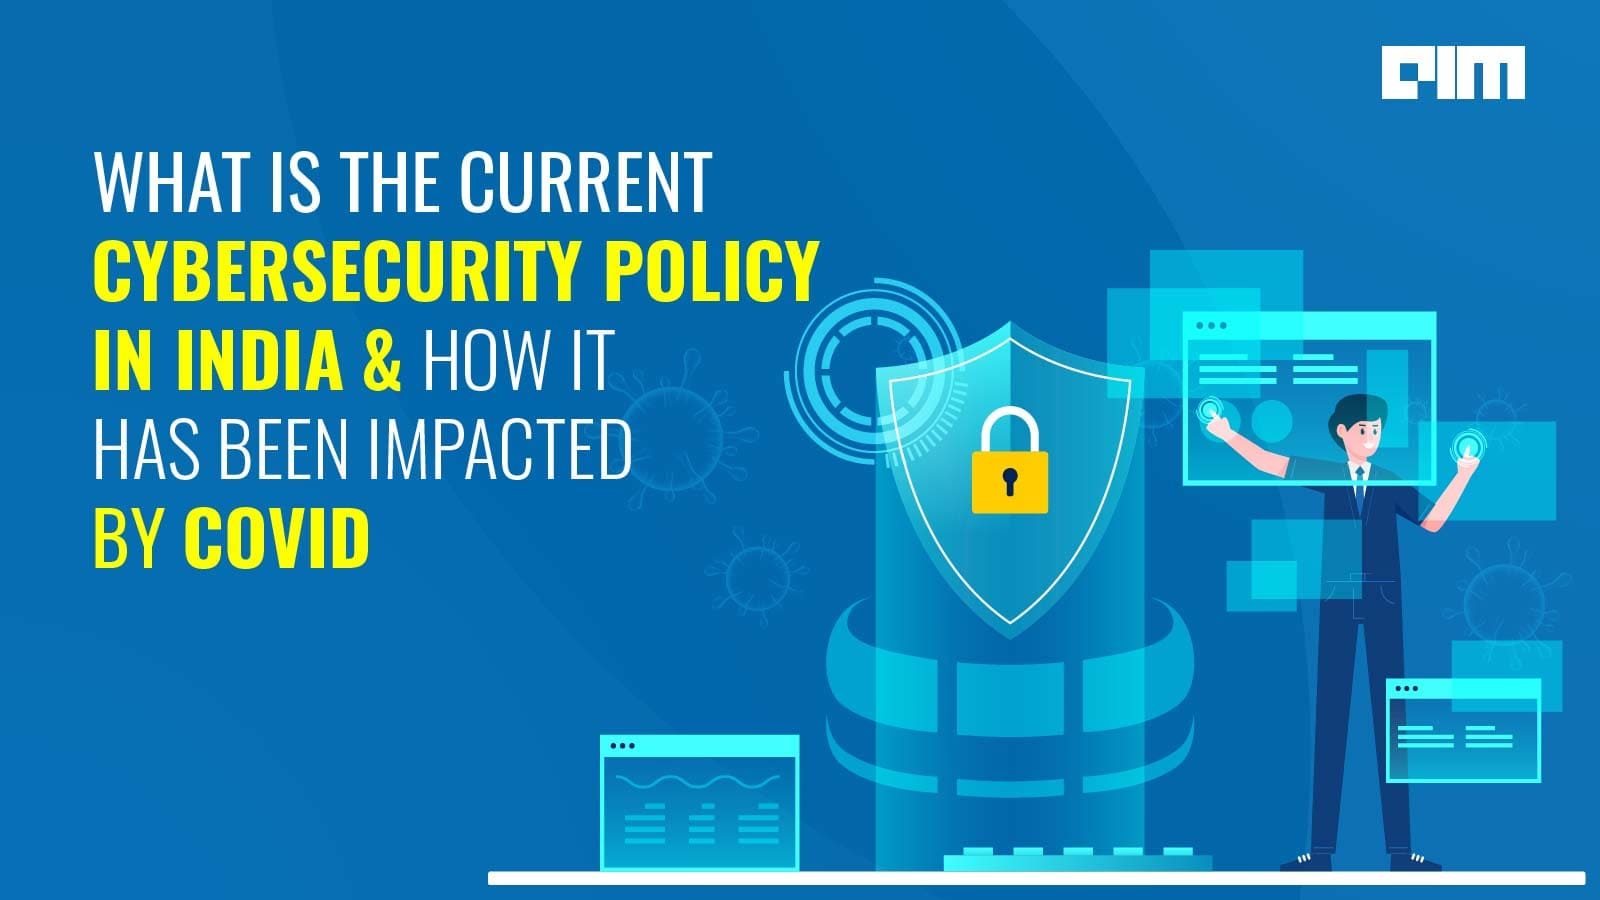 India's Current Cybersecurity Policy & How It Was Impacted By COVID